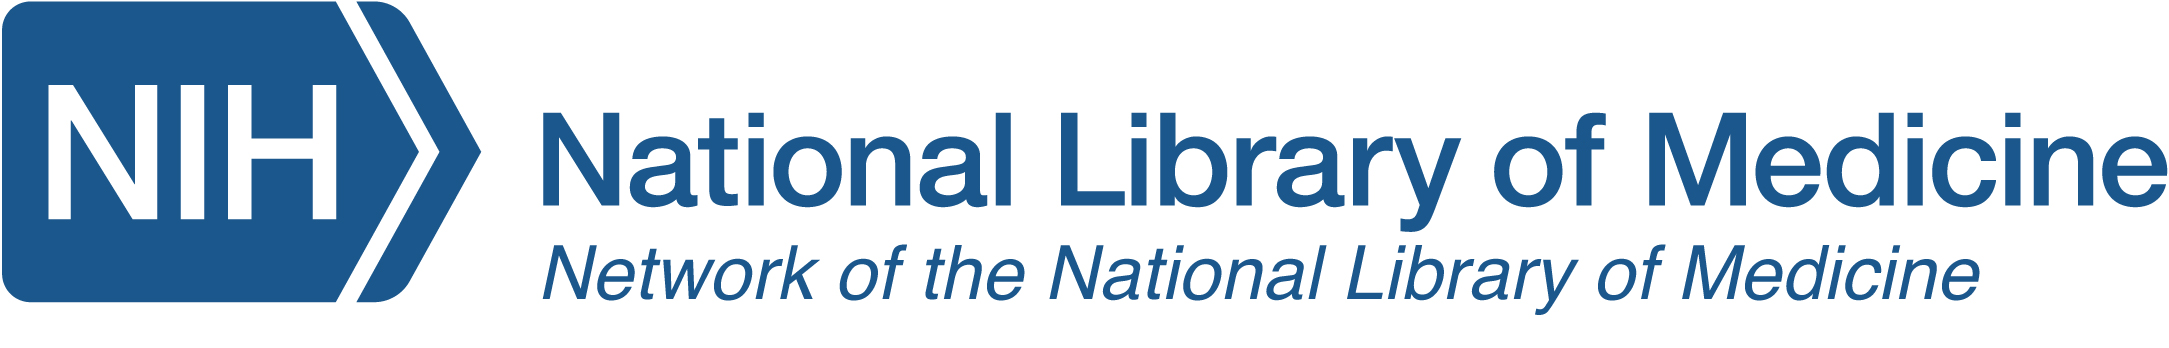 Network of the National Library of Medicine New England Region (NNLM NER) Repository